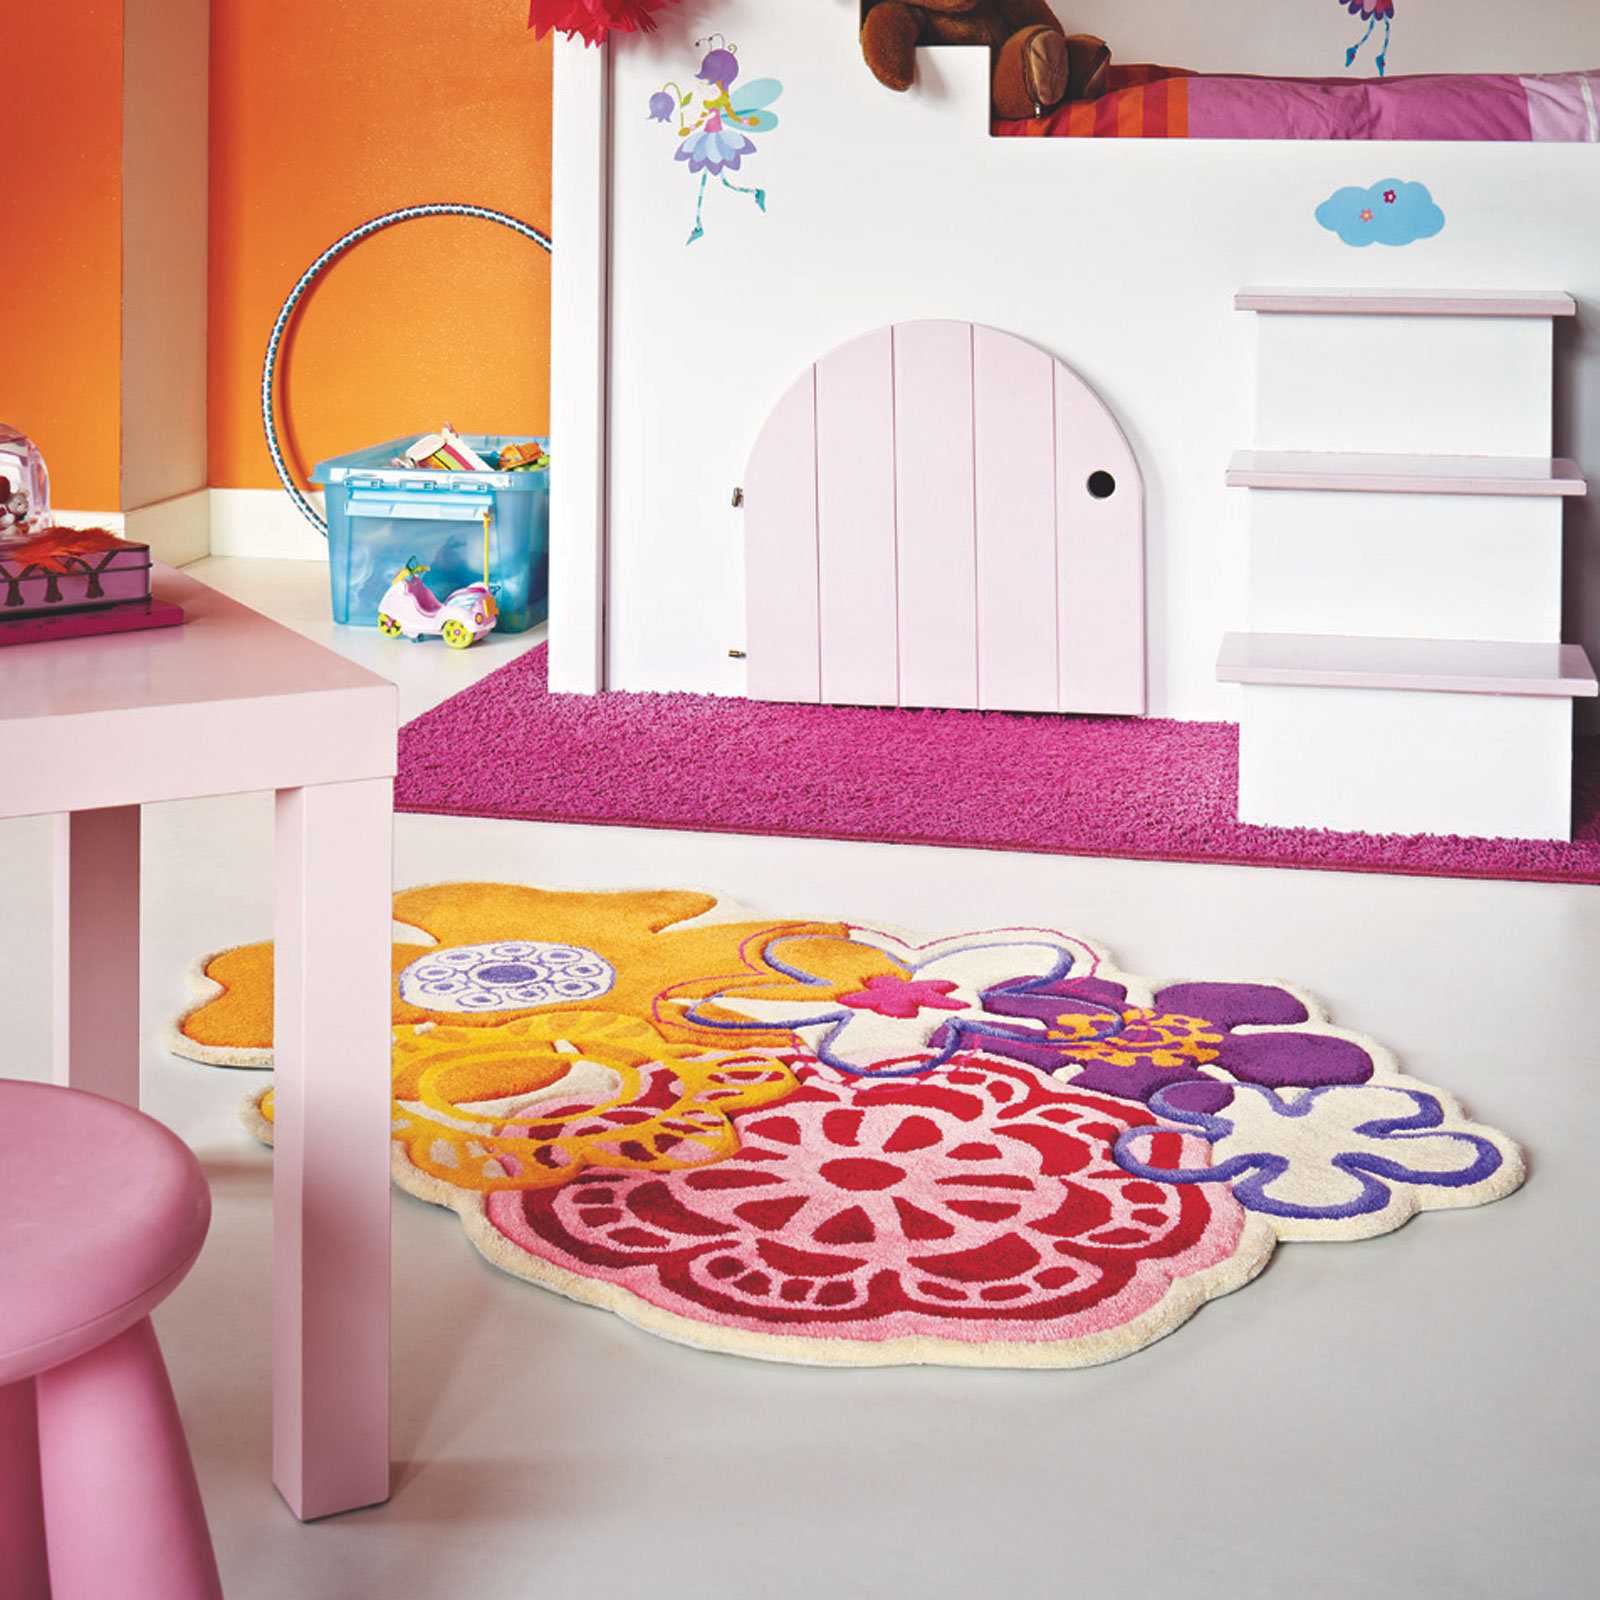 Xian Fleur 41203 Kids Rugs by Brink and Campman